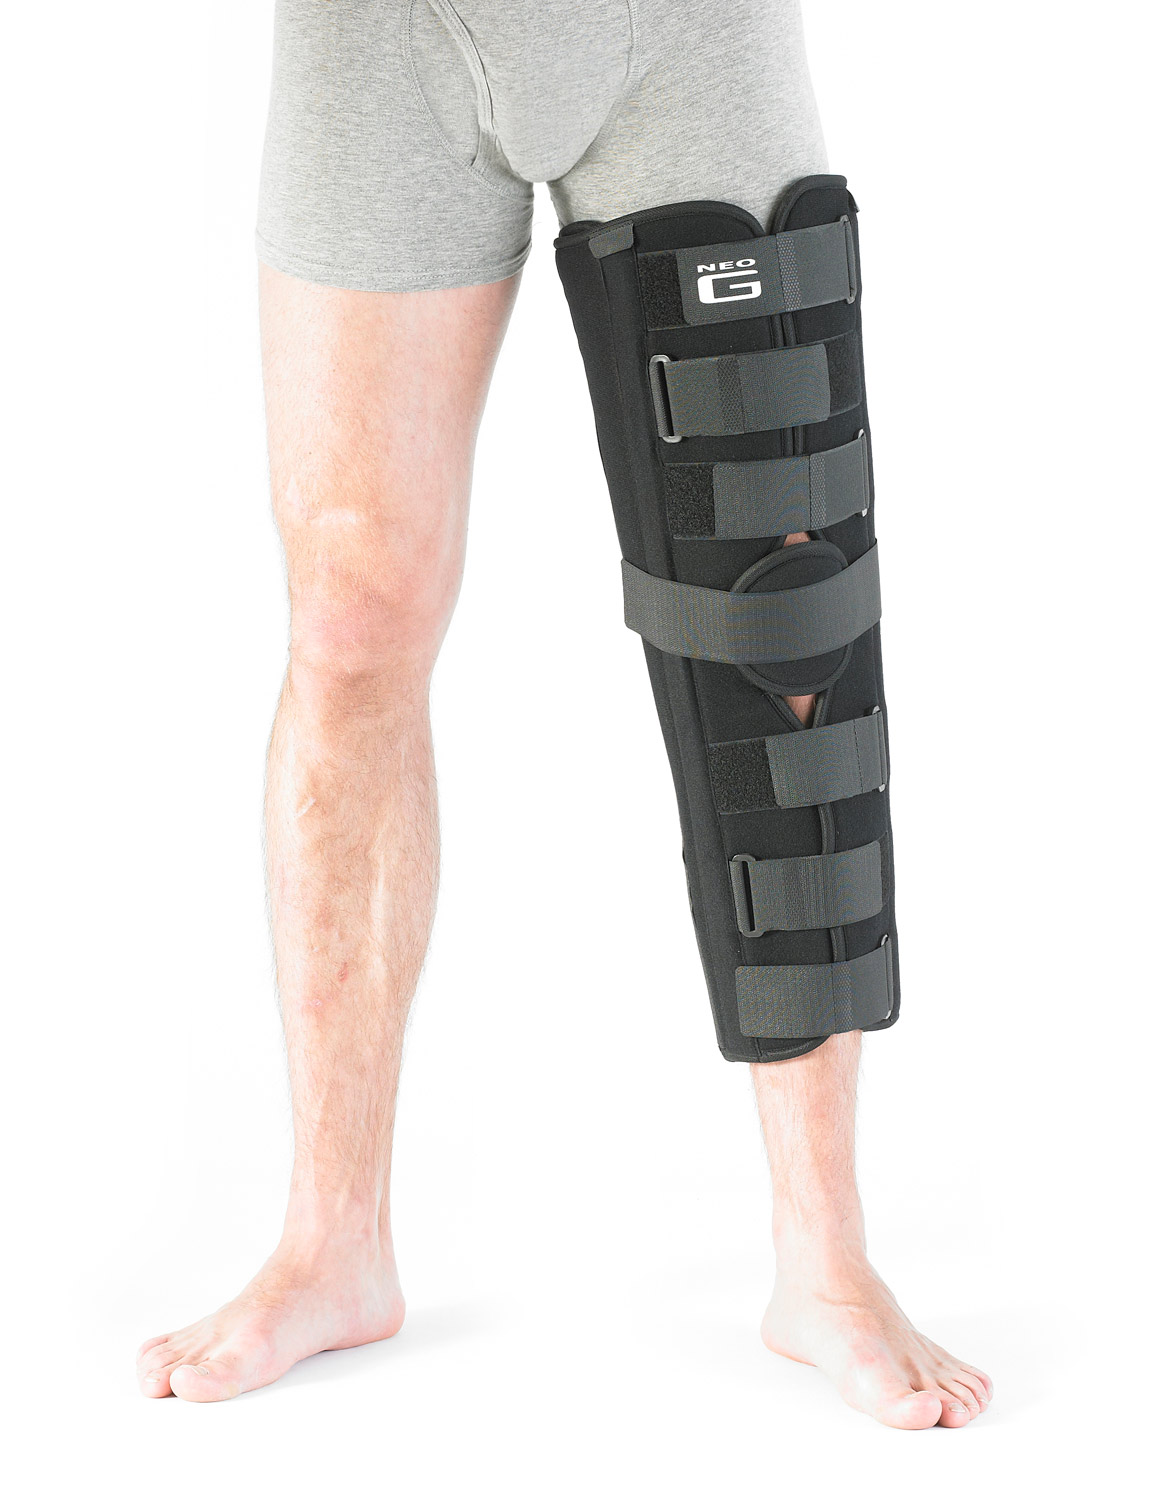 320 - KNEE IMMOBILIZER  It can be used during post operative recovery to help rehabilitation and to assist controlled walking. Immobilizing the knee helps muscles, ligaments and tendons as they are allowed to fully rest, recover and heal.